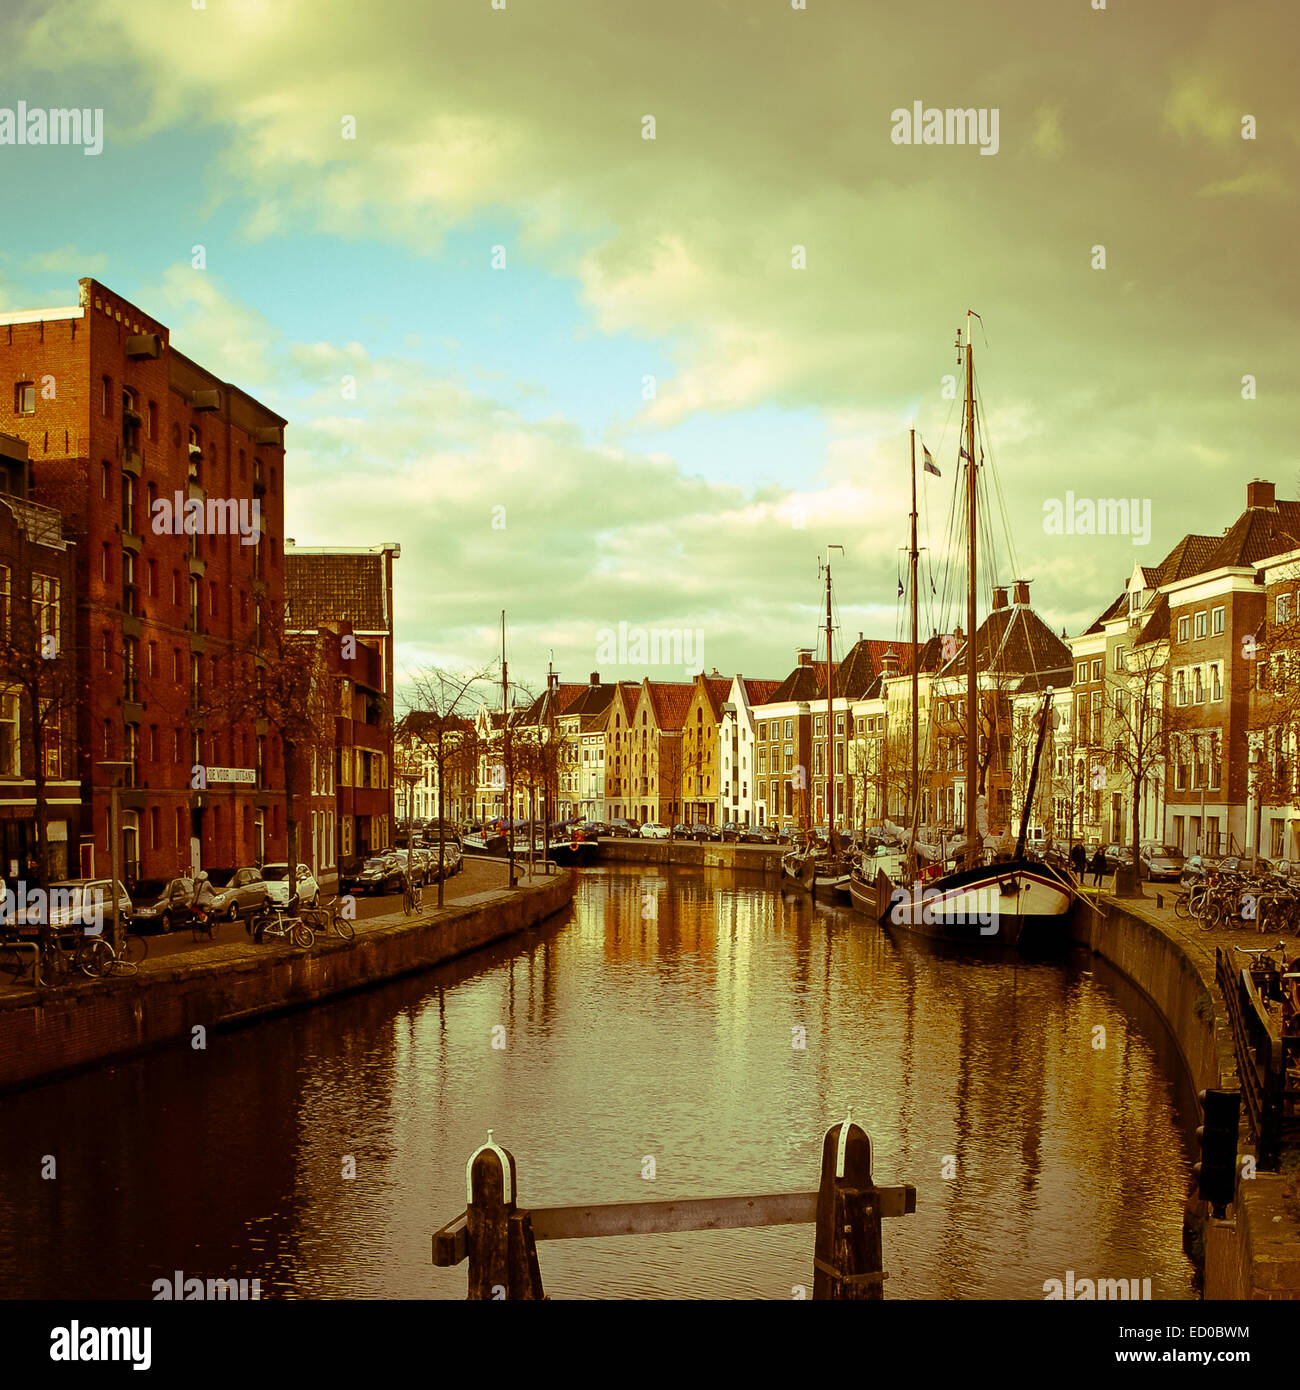 Netherlands, Groningen, Hoge der Aa, River in city - Stock Image